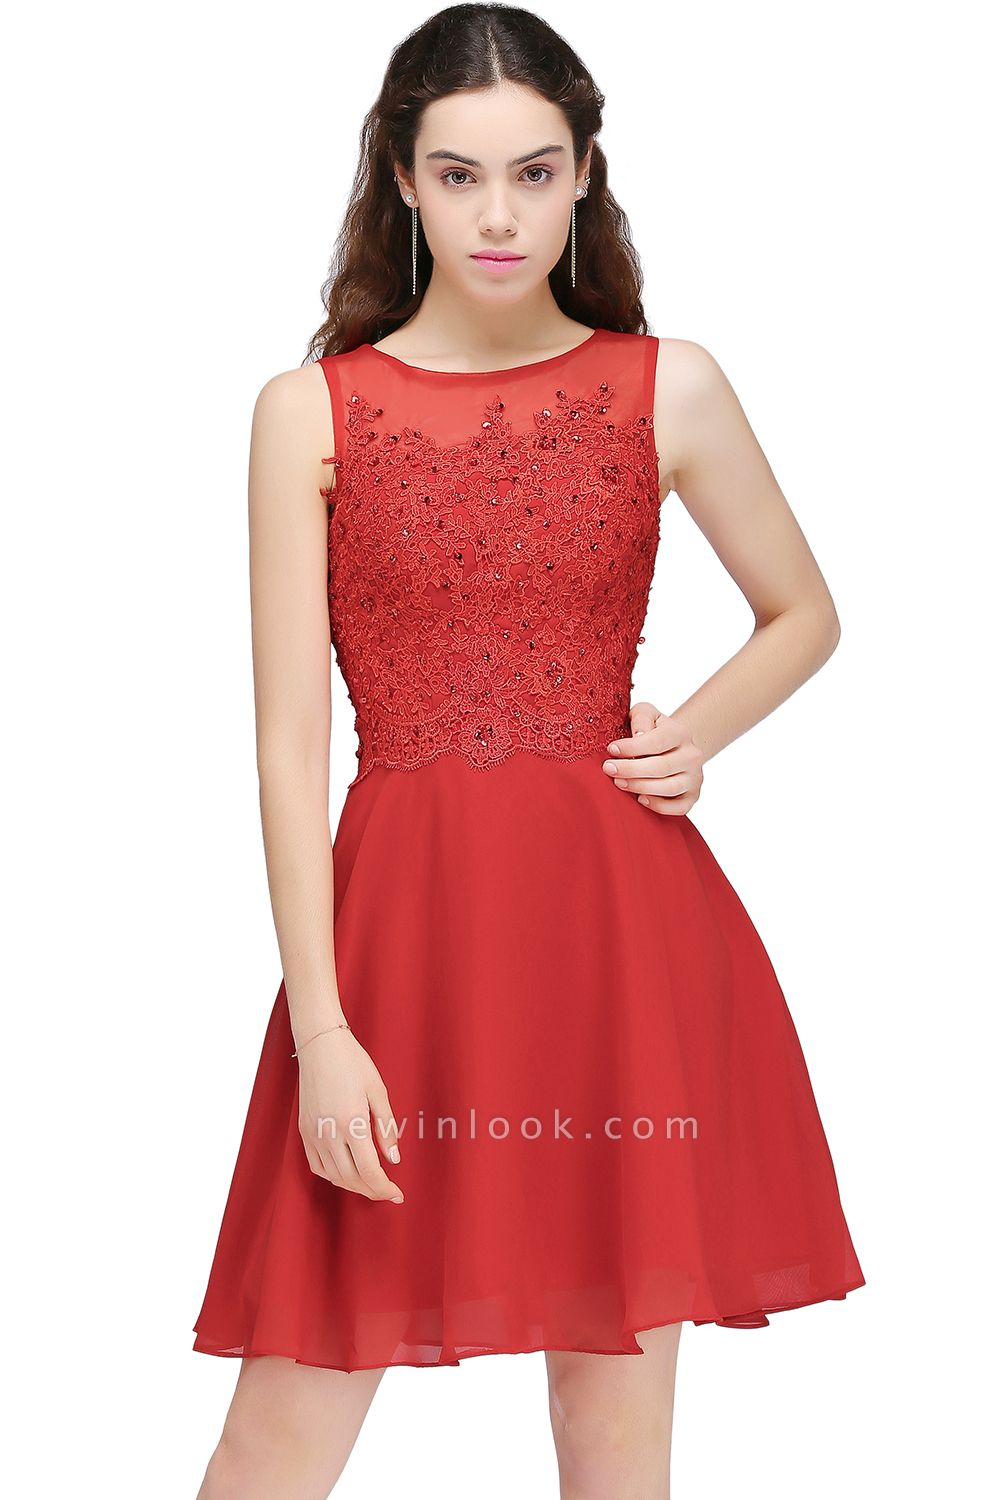 CASEY | Quinceanera Short Chiffon Red Dama Dresses with Lace Appliques